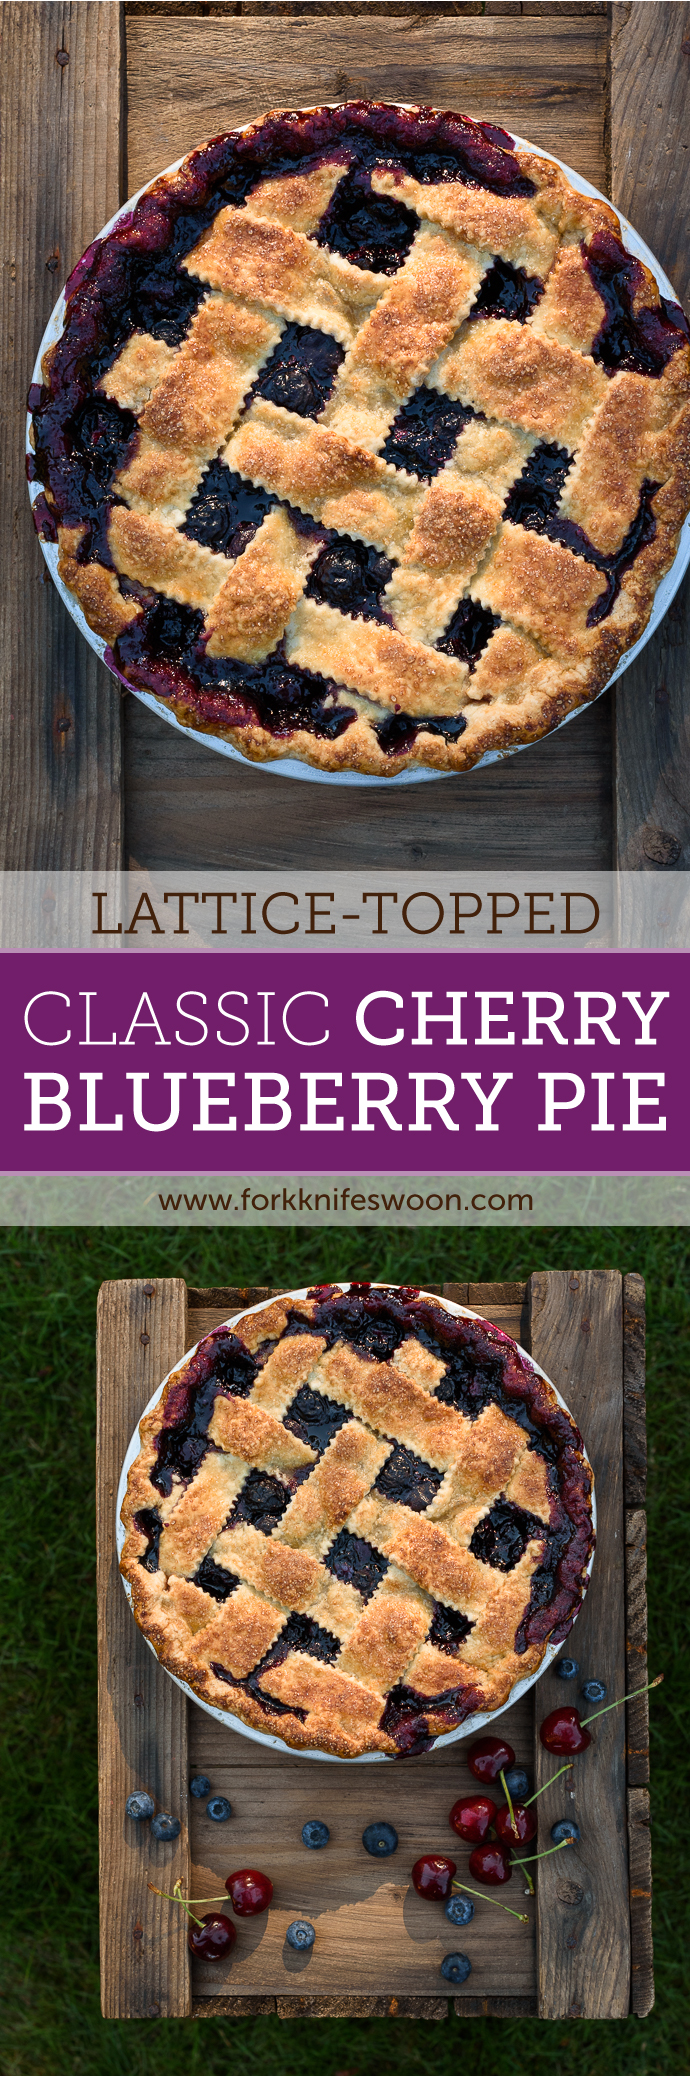 Lattice Topped Classic Cherry Blueberry Pie | Fork Knife Swoon @forkknifeswoon